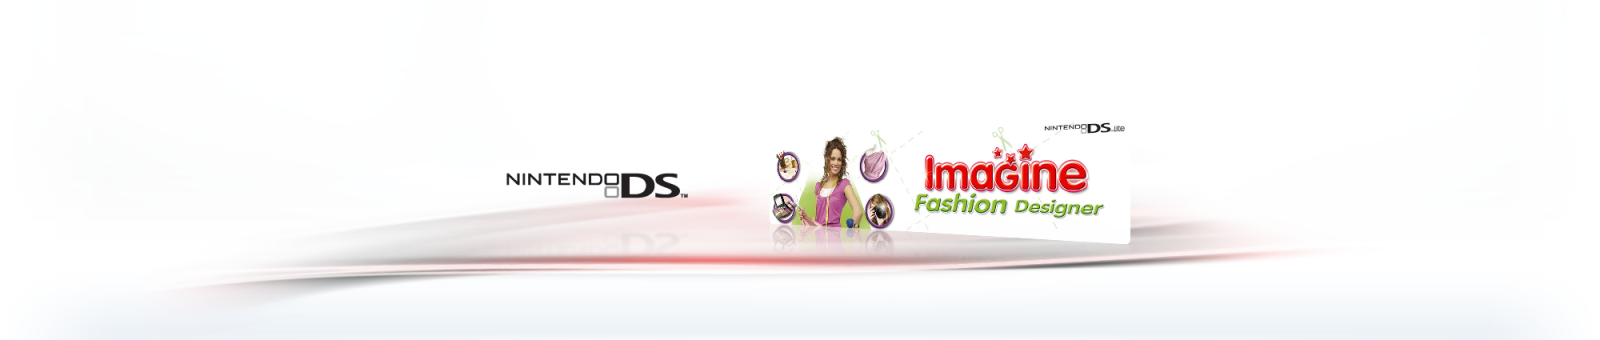 Imagine Fashion Designer Nintendo Ds Games